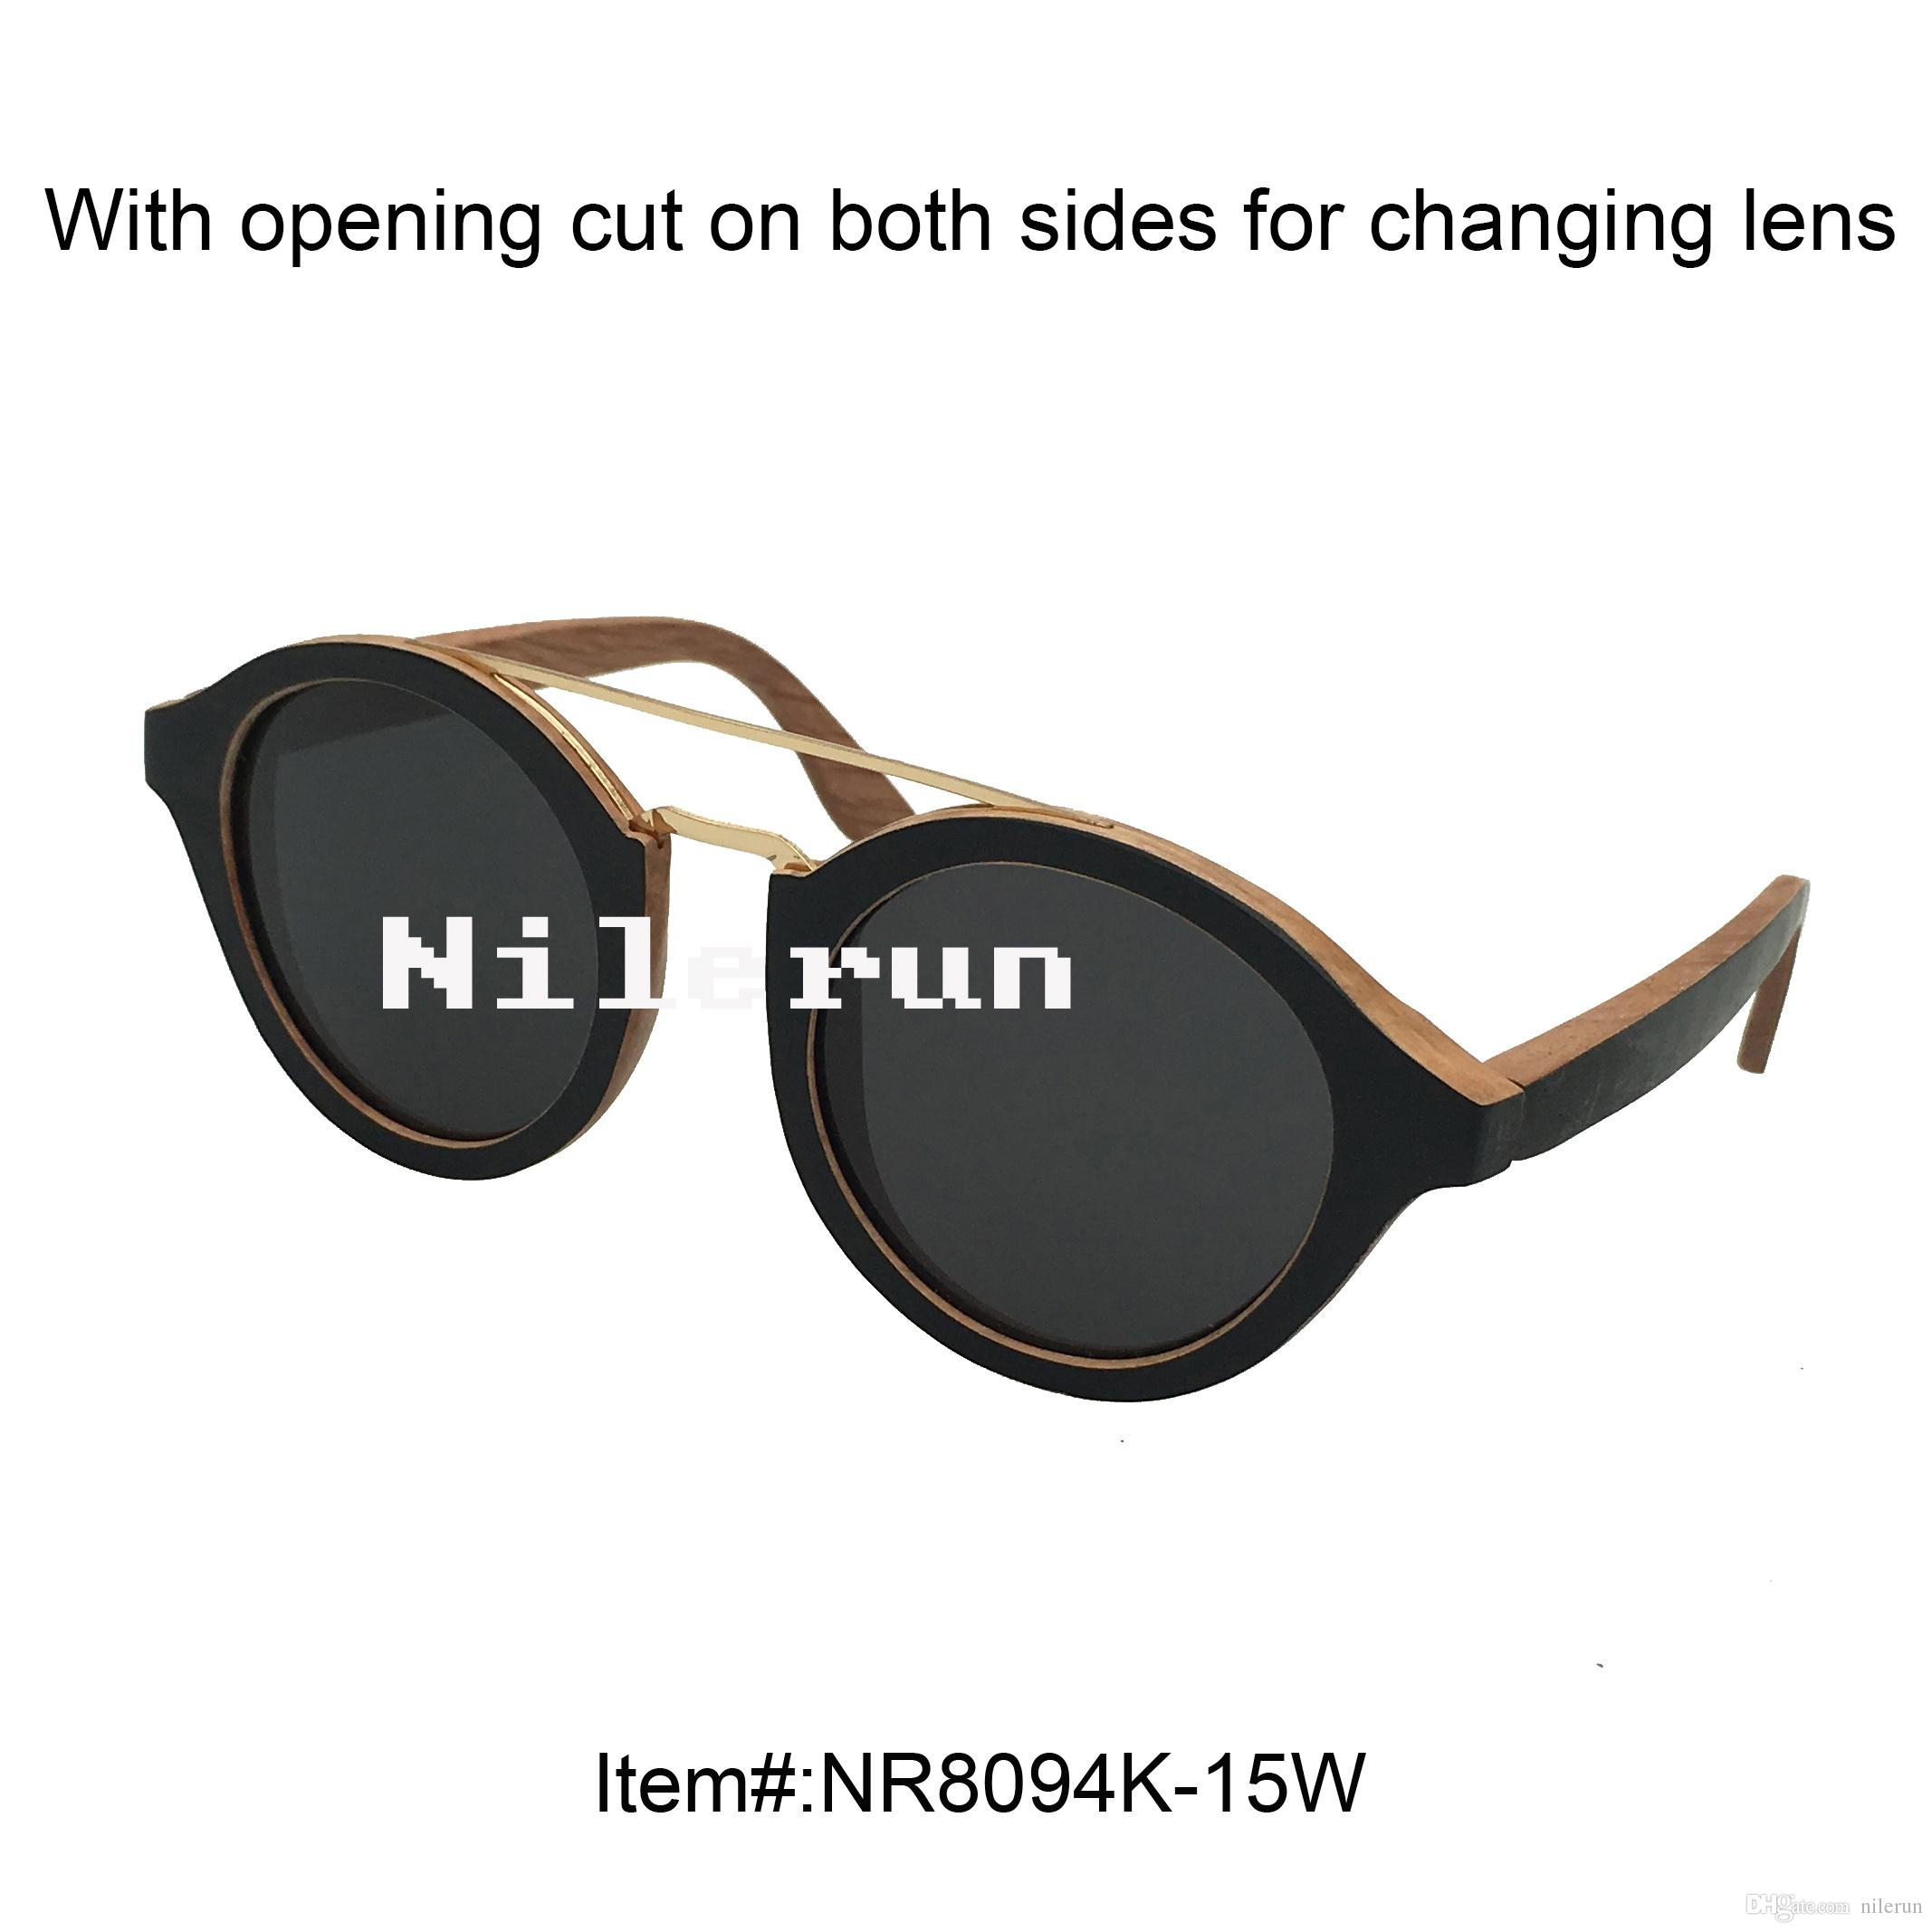 5a54c1b82f Double Metal Nose Bridge Round Black Wood Frame Sunglasses Round ...